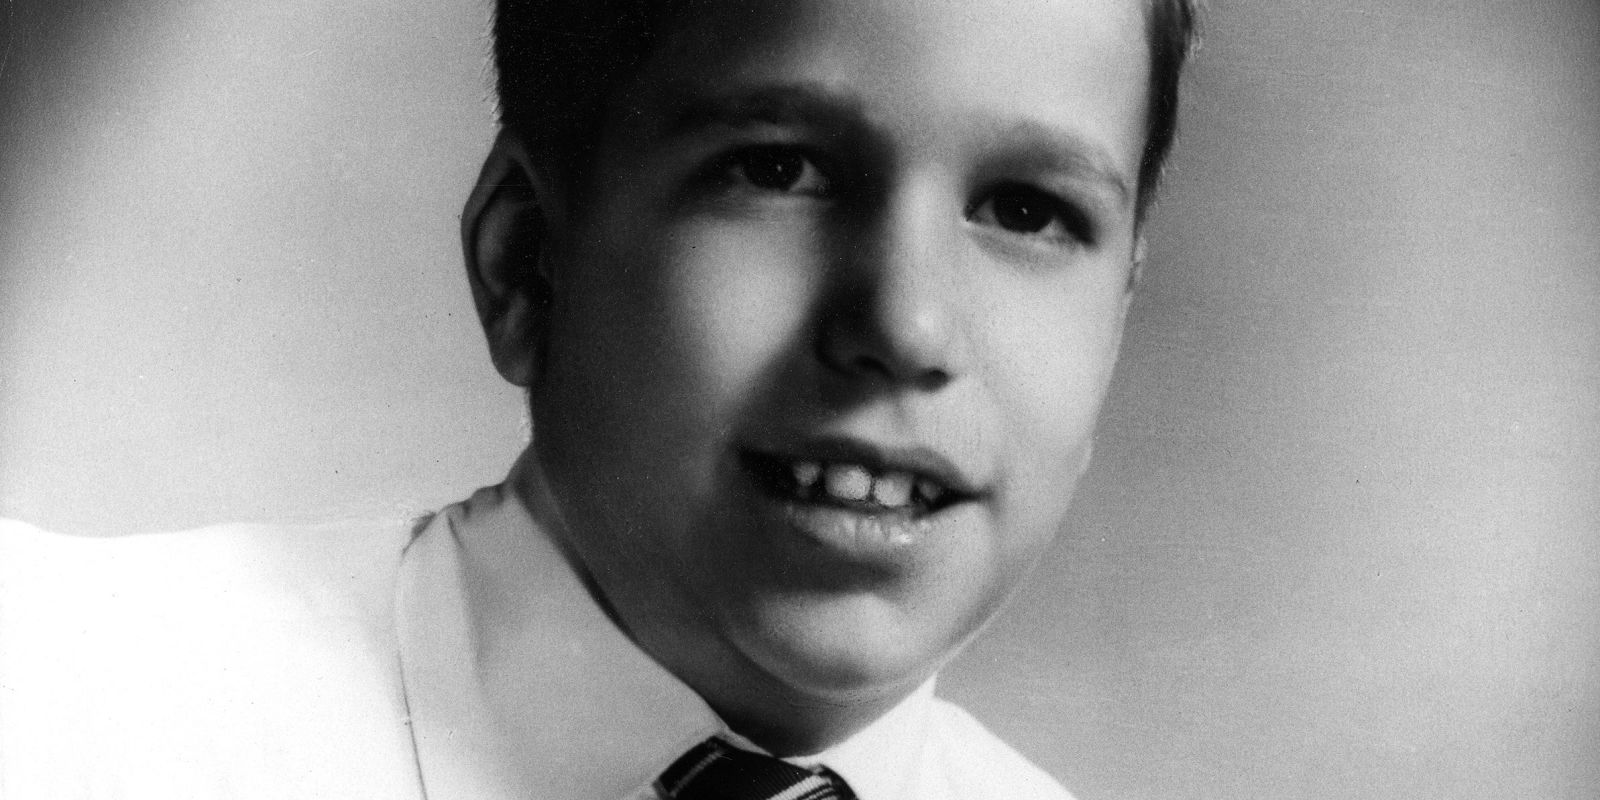 Henry Winkler Then and Now — Young Henry Winkler Photos